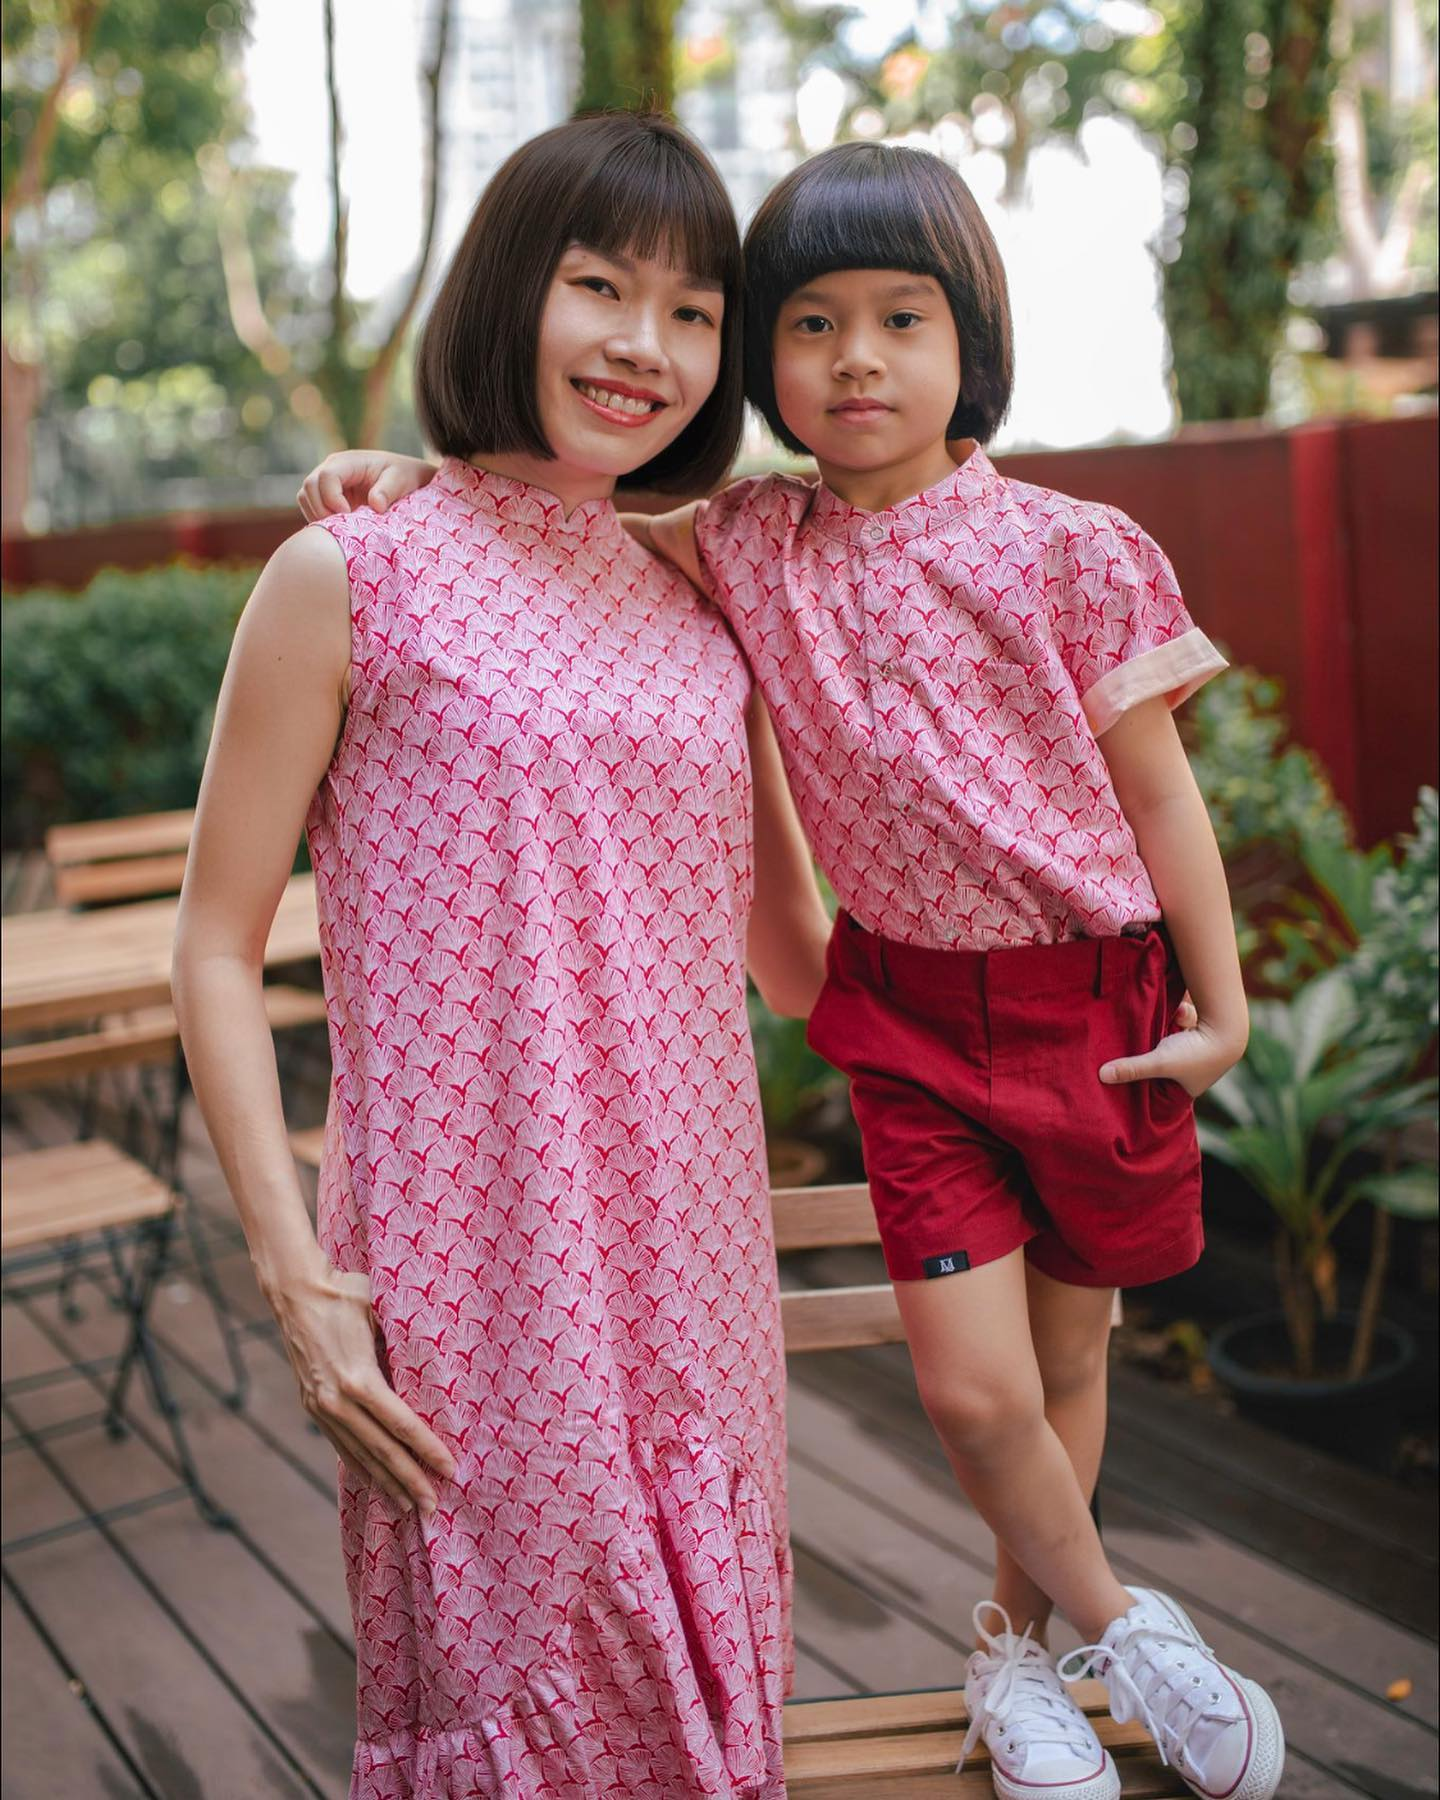 Maison Q mum and son outfit